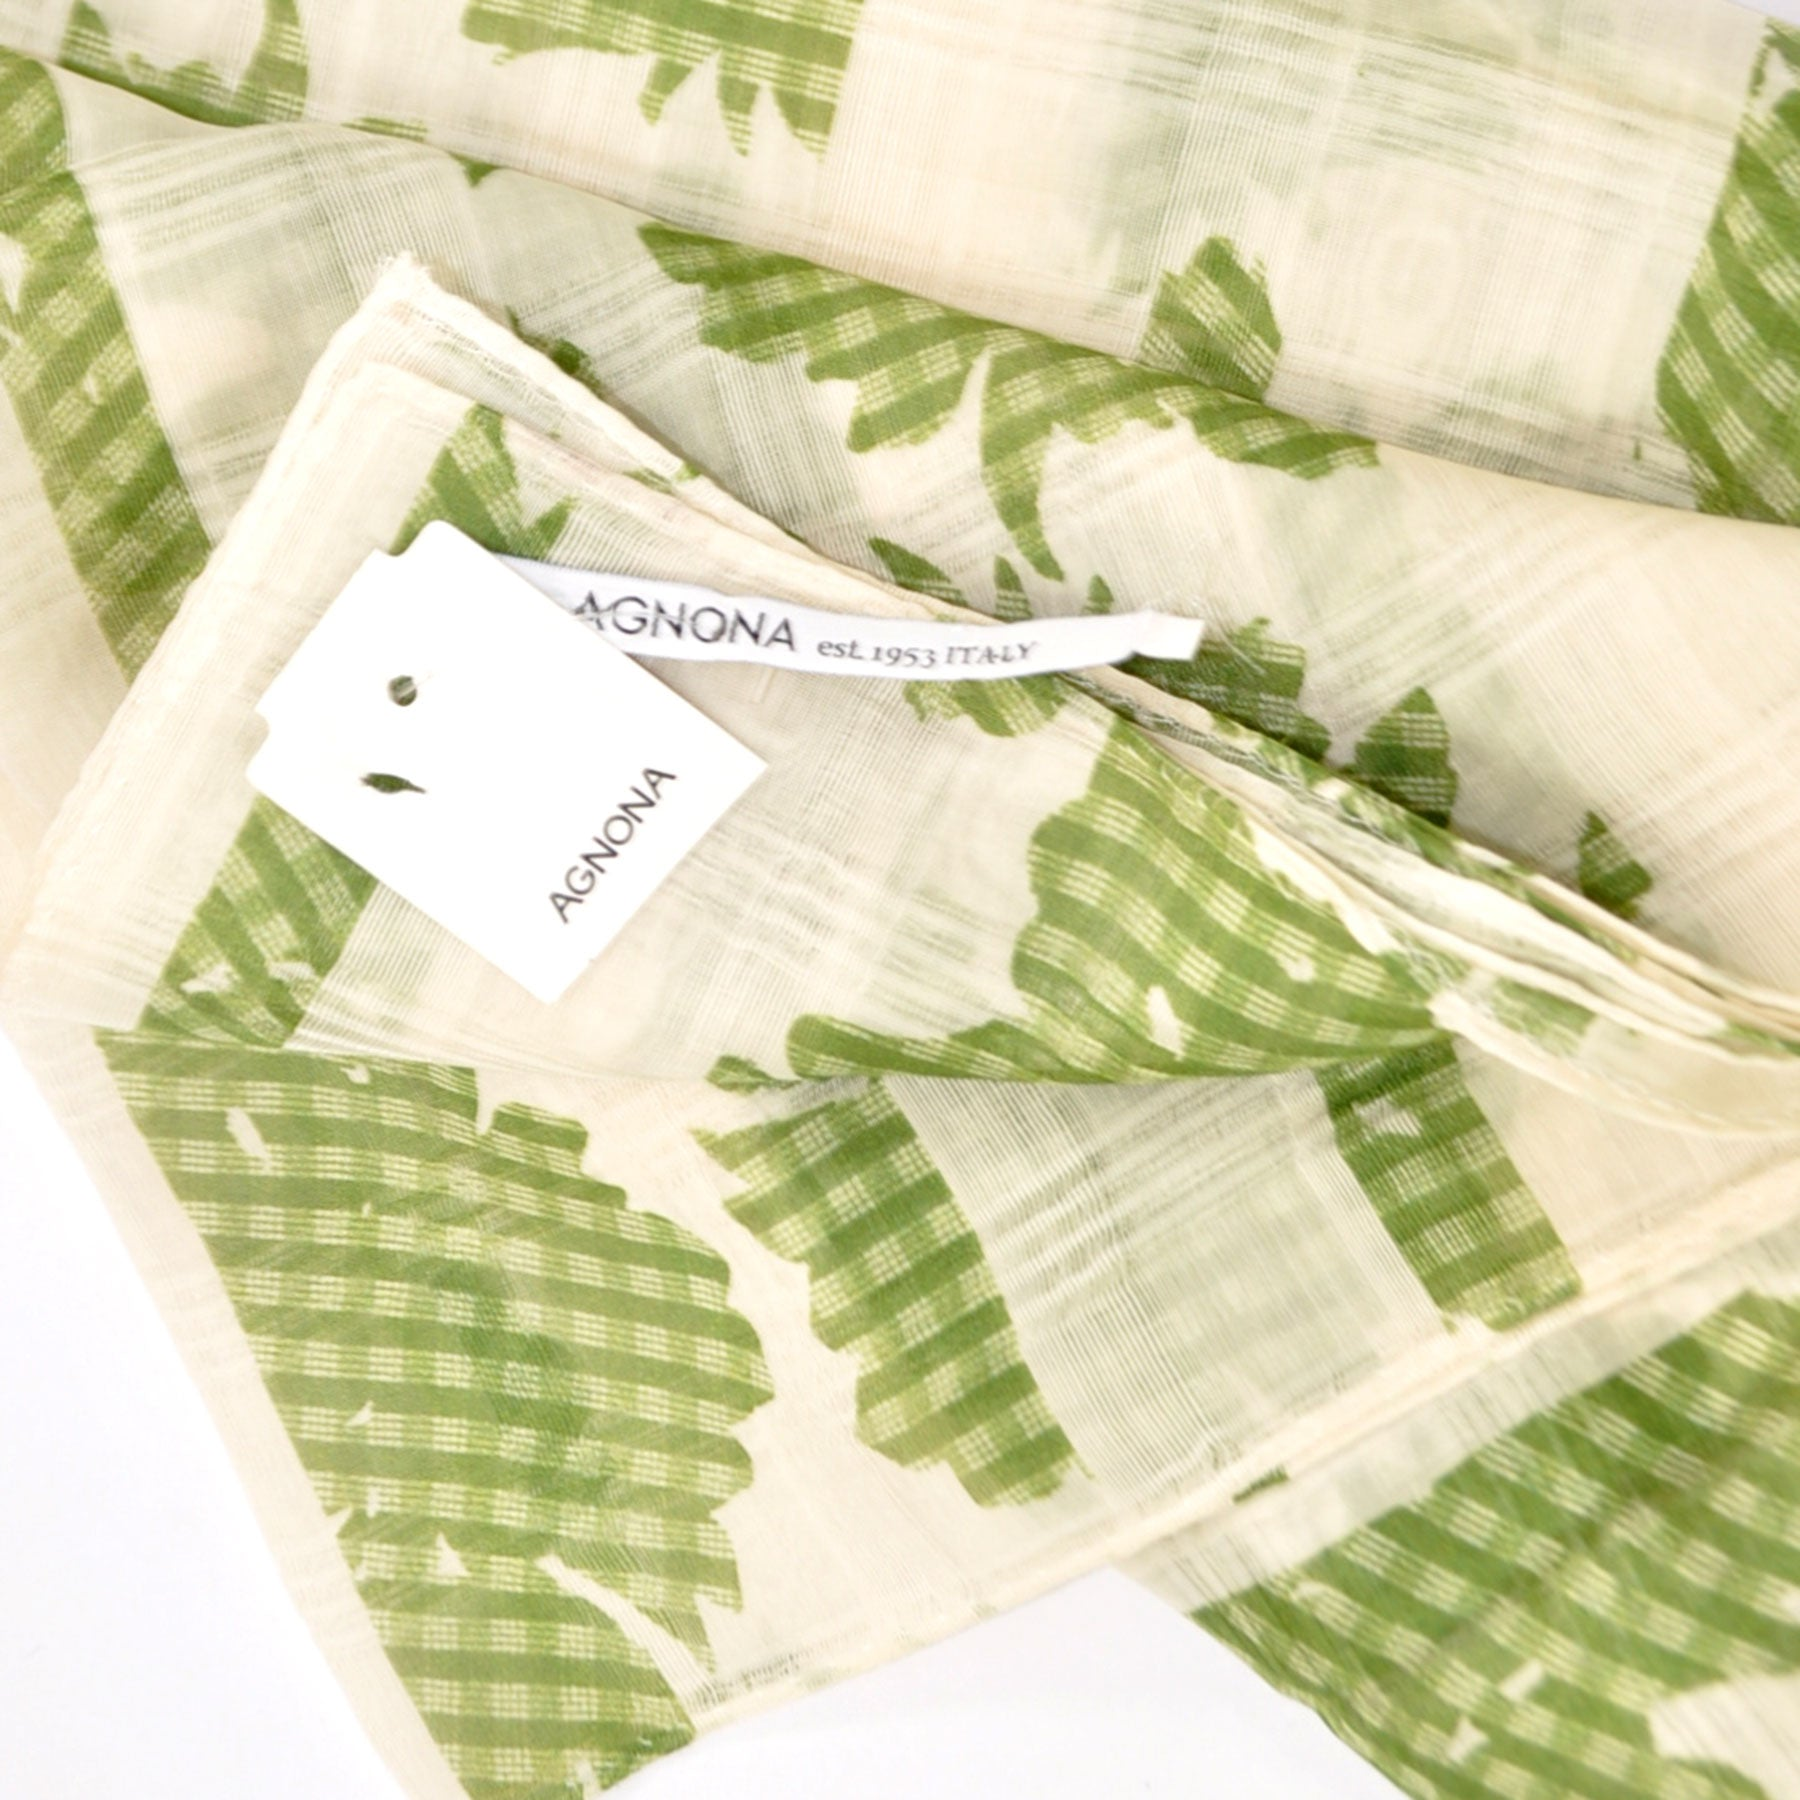 Agnona Scarf White Green Floral Cotton Silk - FINAL SALE